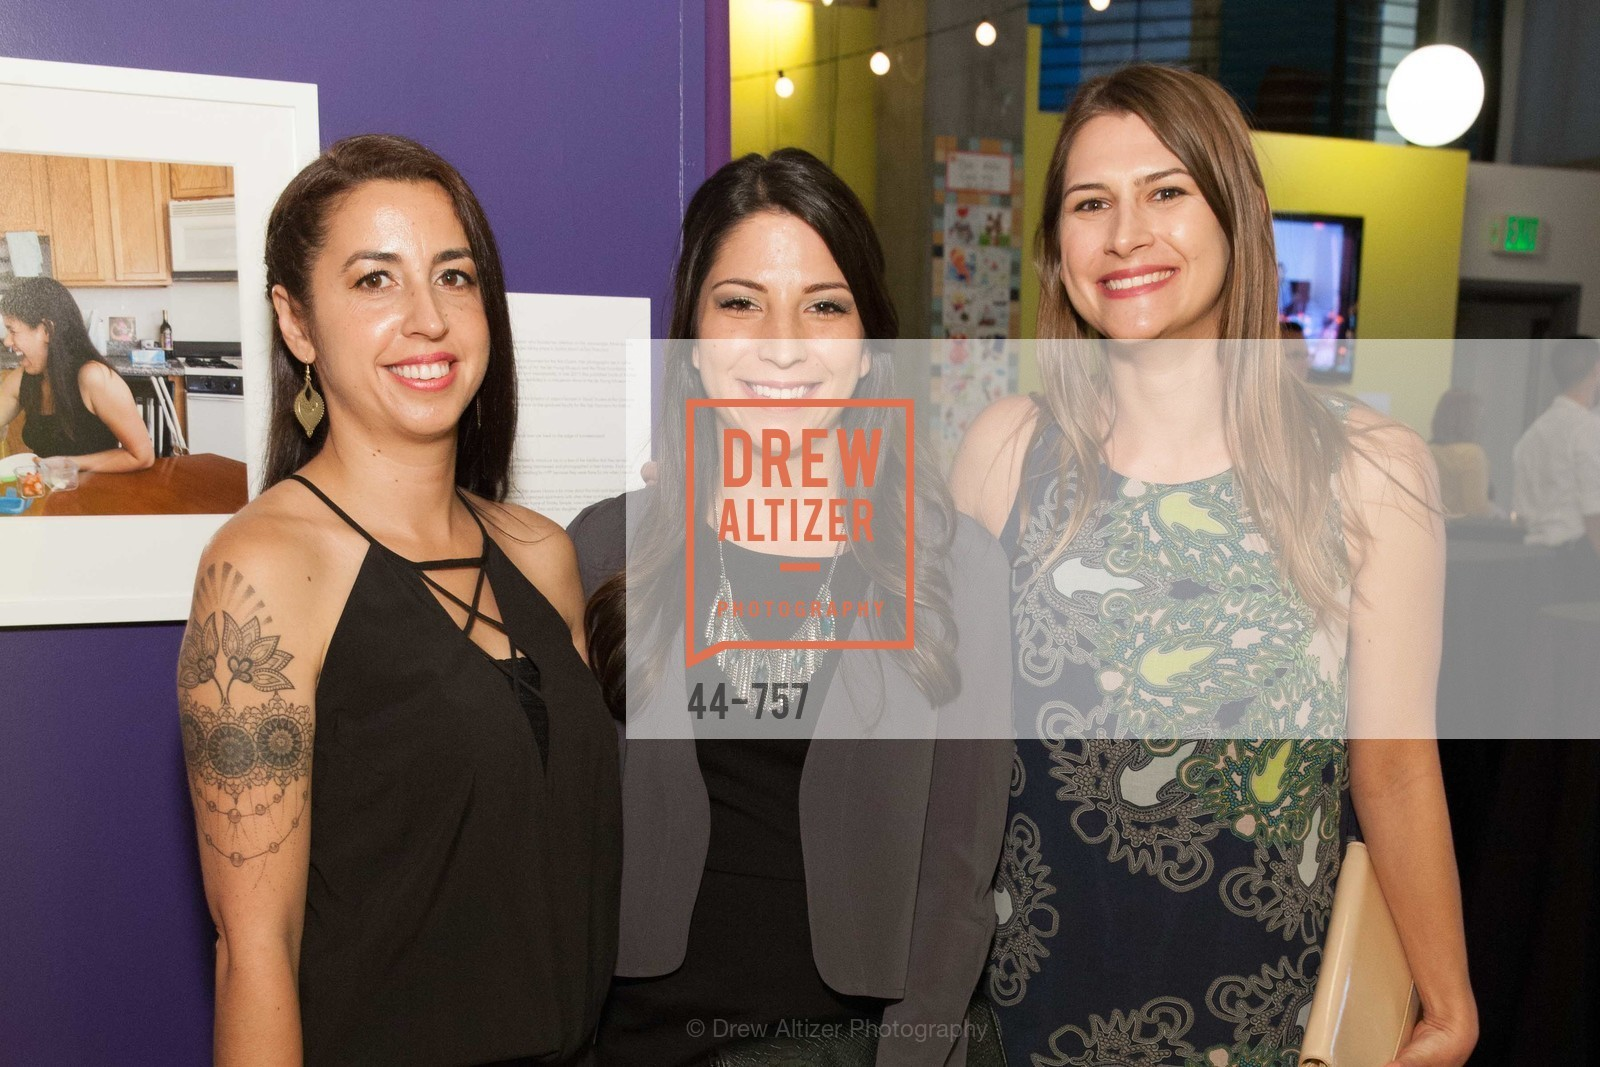 Jen Greco, Valerie Alayma, Sarah Kasabian, HOMELESS PRENATAL PROGRAM Our House, Our Mission Gala, Homeless Prenatal Program. 2500 18th St, May 31st, 2015,Drew Altizer, Drew Altizer Photography, full-service agency, private events, San Francisco photographer, photographer california